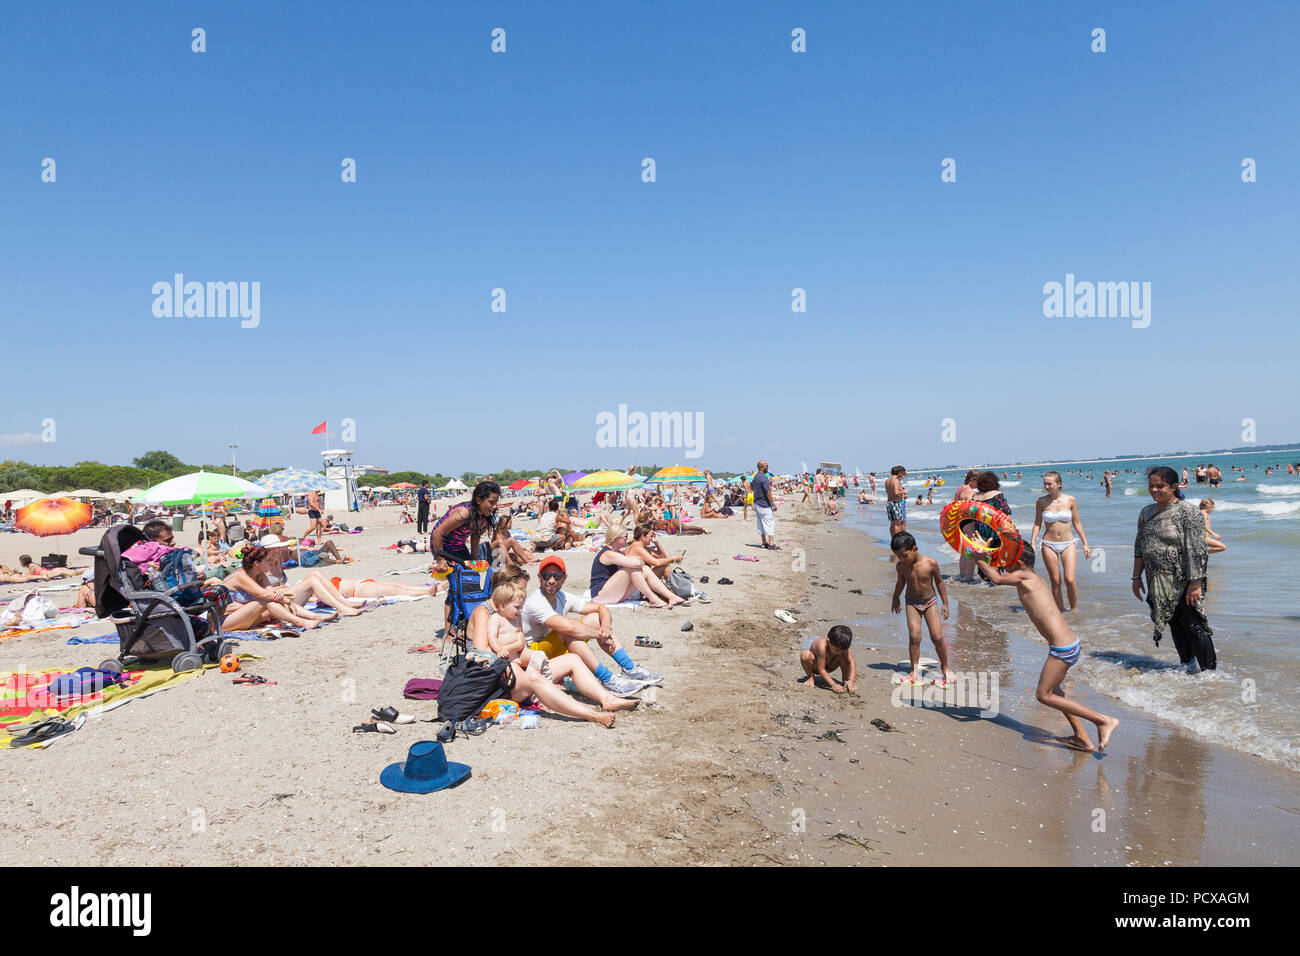 Lido, Venice, Italy, 4th August 2018. People escape the heatwave currently gripping Europe by spending their Saturday afternoon on Blue Moon beach, Lido di Venezia, Venice, Italy. The temperature in Venice has been in the mid to high thirties all week and is set to continue into next week.  Credit Mary Clarke/Alamy Live News - Stock Image